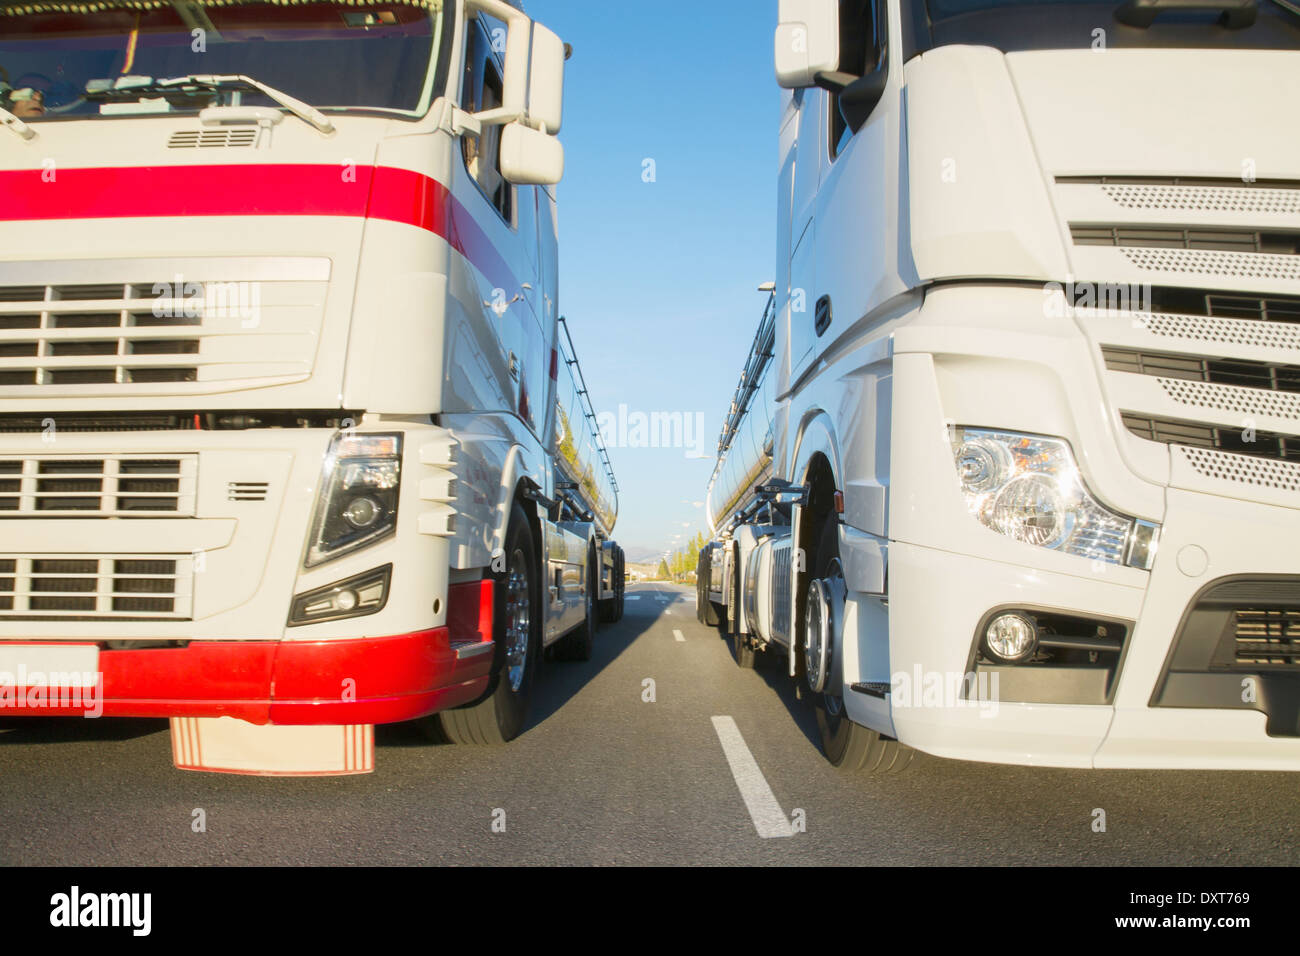 Commercial trucks side by side on the road - Stock Image